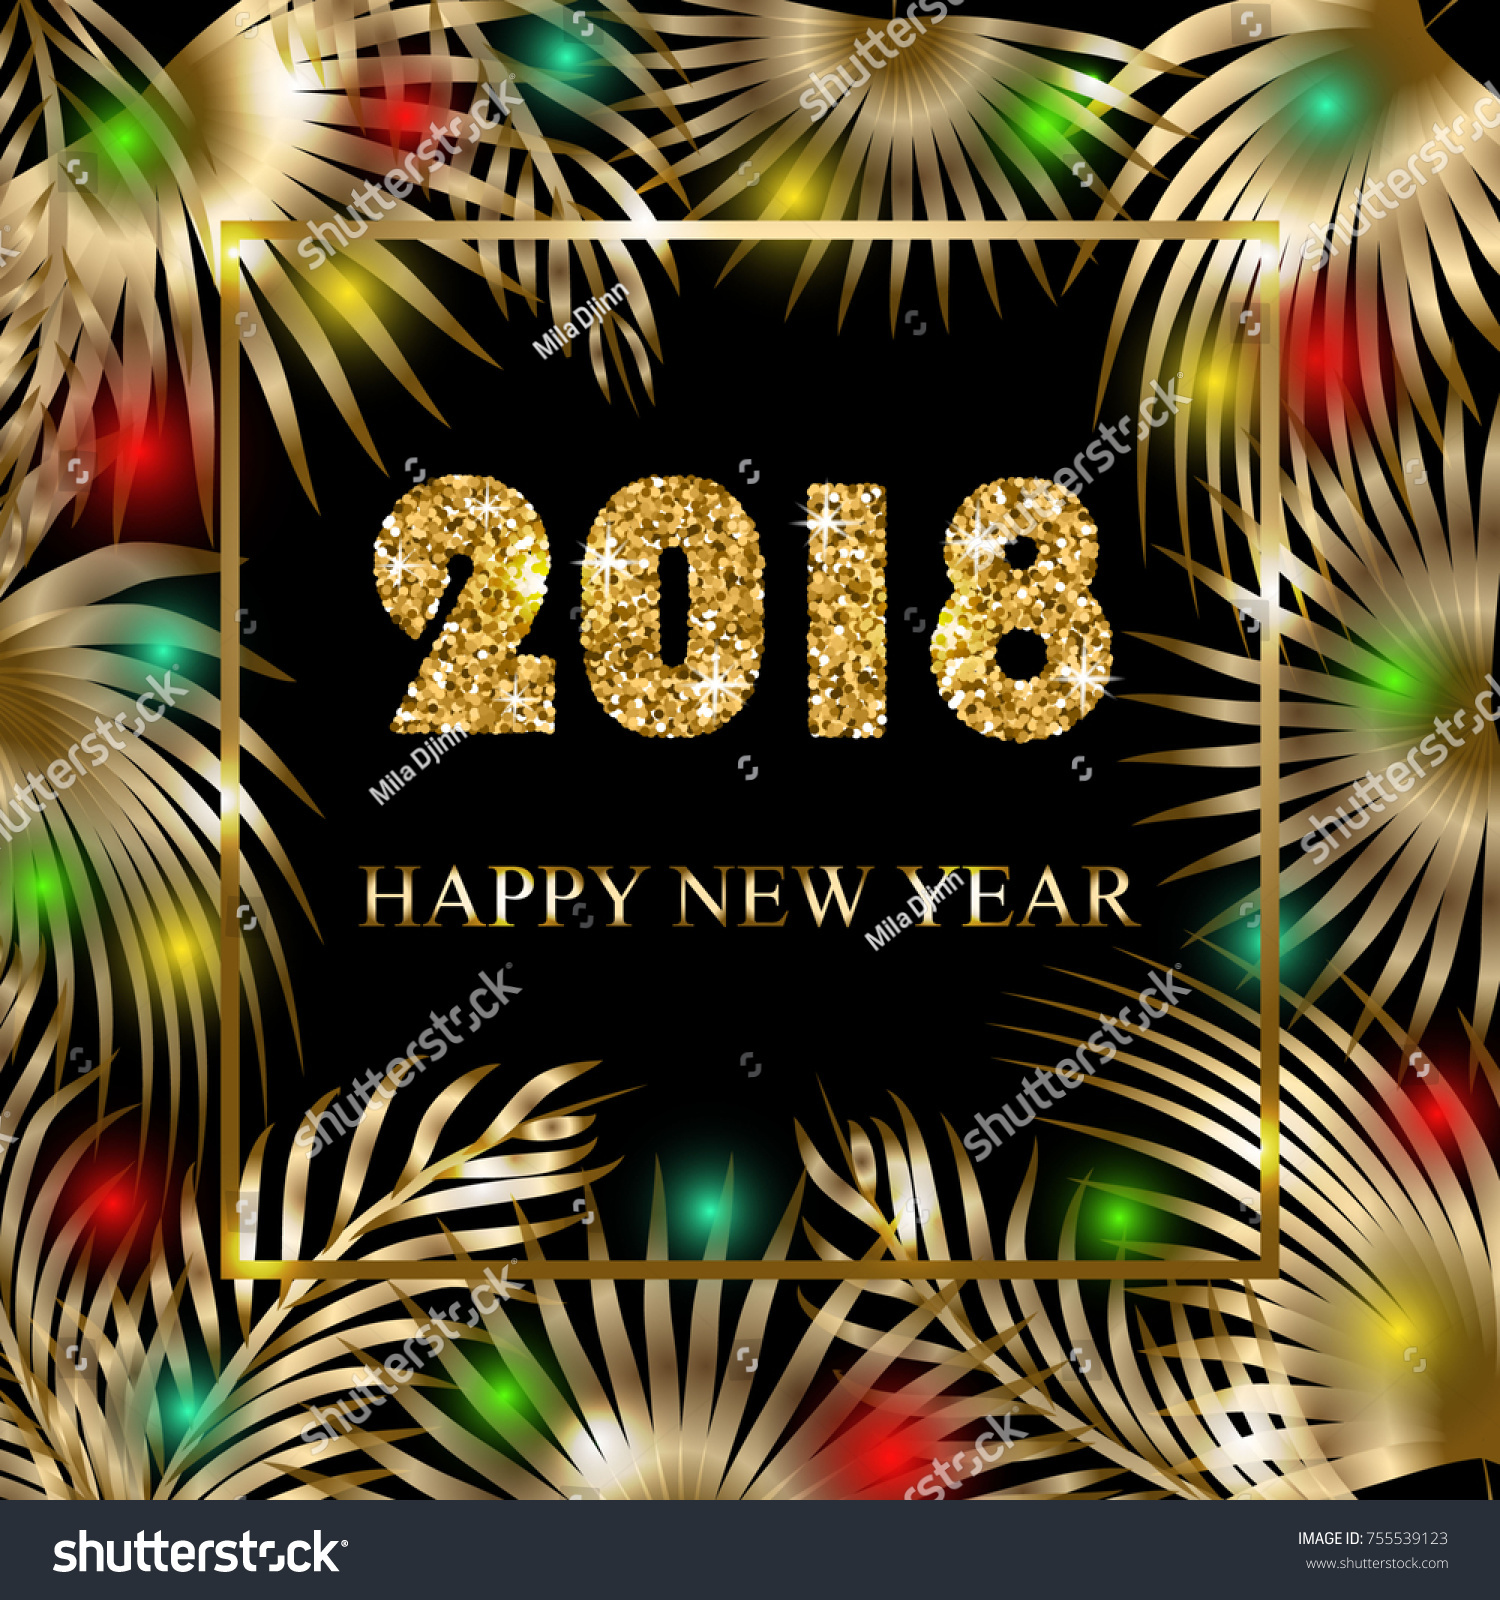 happy new year 2018 greeting banner with palm trees and garlands tropical holiday concept